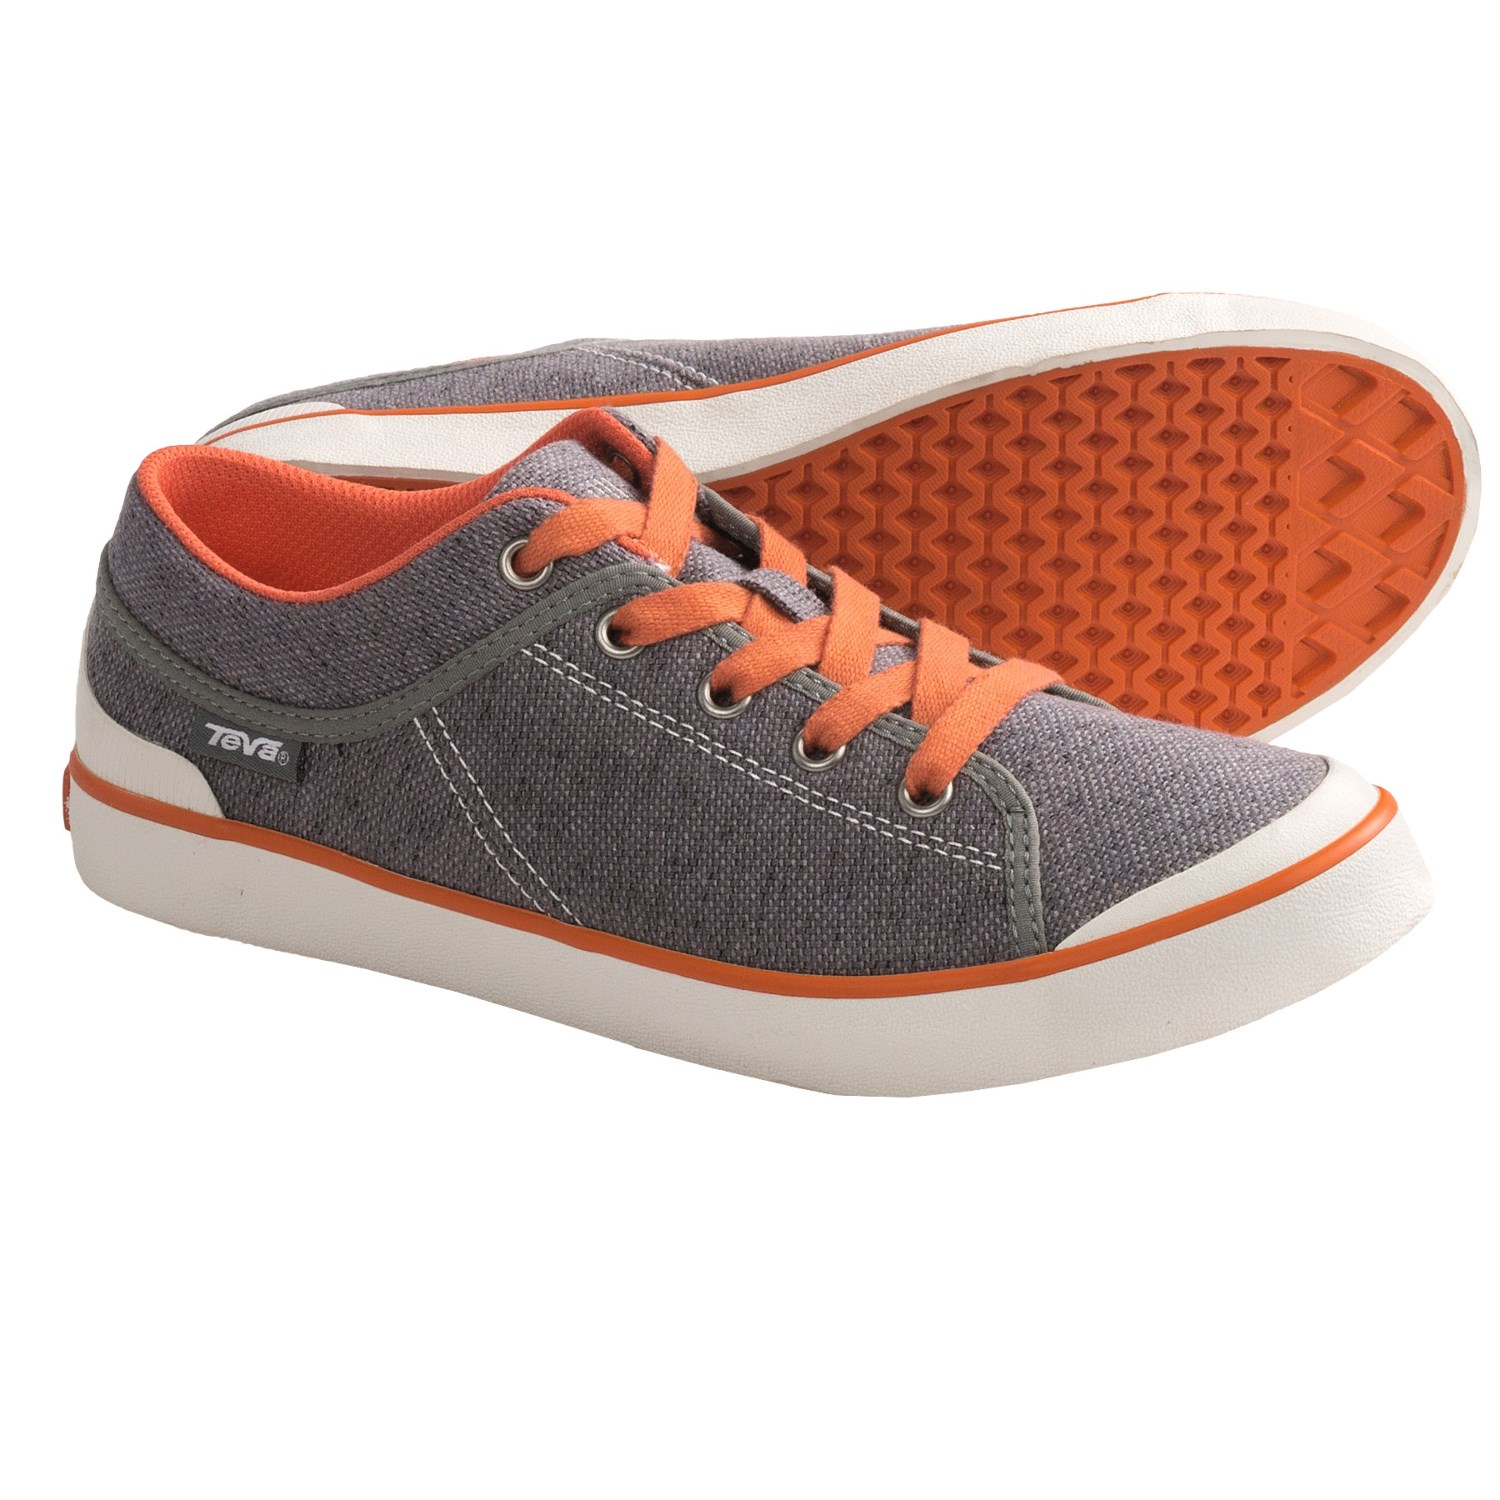 Puma shoes for women on sale. Women clothing stores